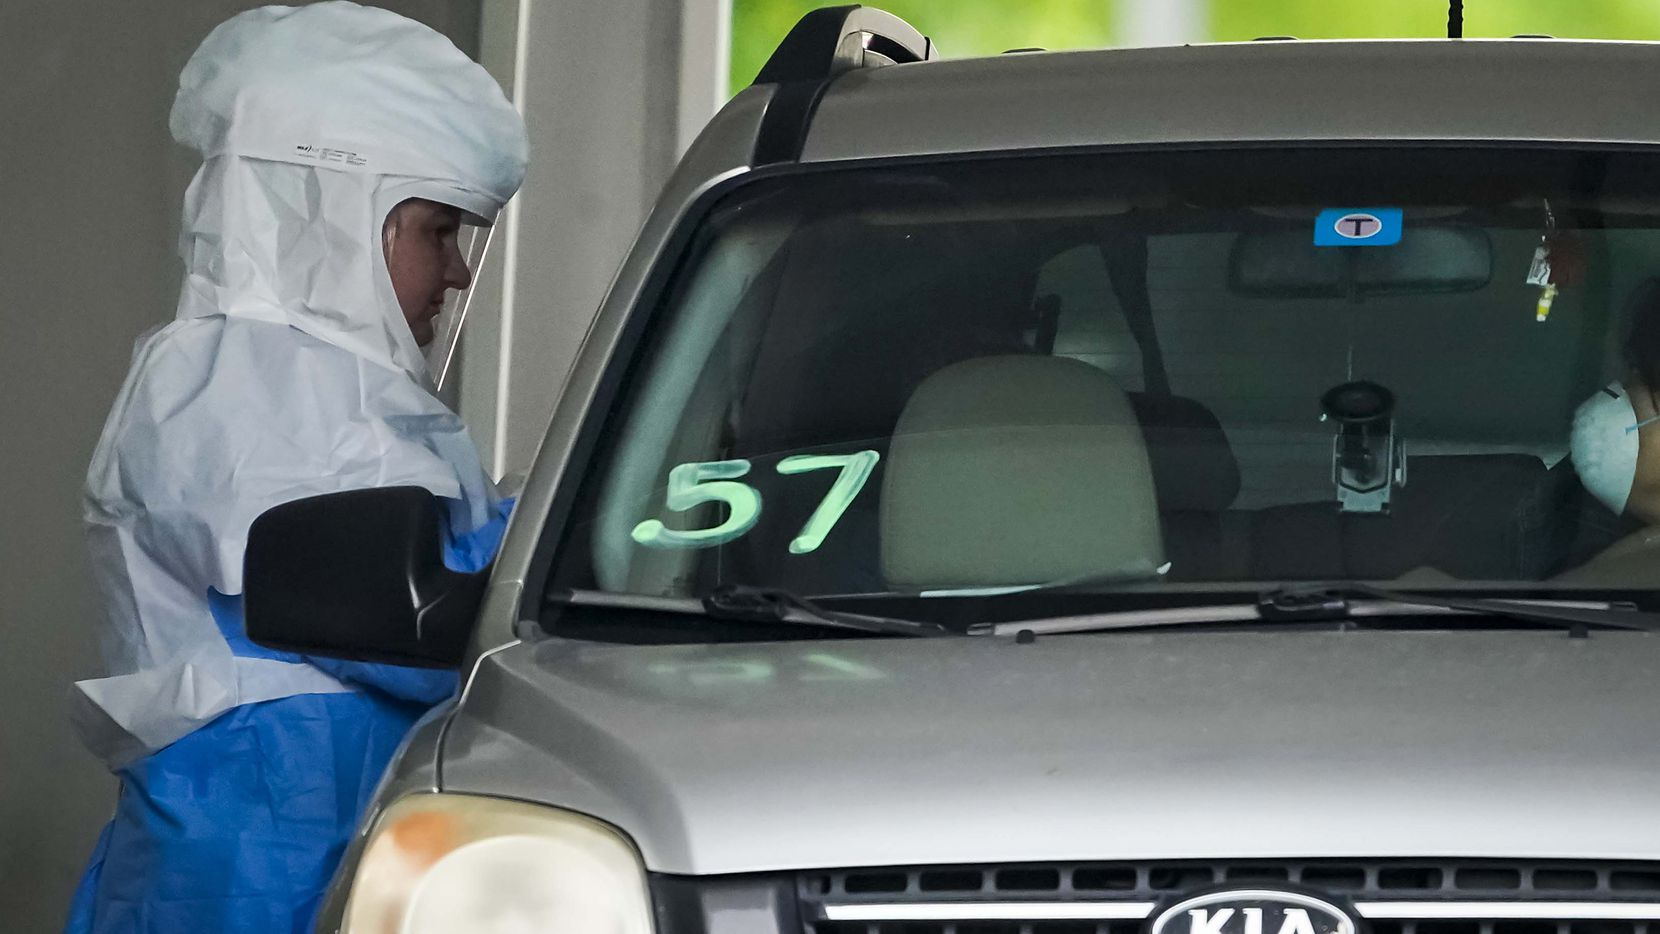 A healthcare worker screens the passenger of a vehicle at a Dallas County drive-thru COVID-19 testing center outside Ellis Davis Field House on Thursday, April 9, 2020, in Dallas.